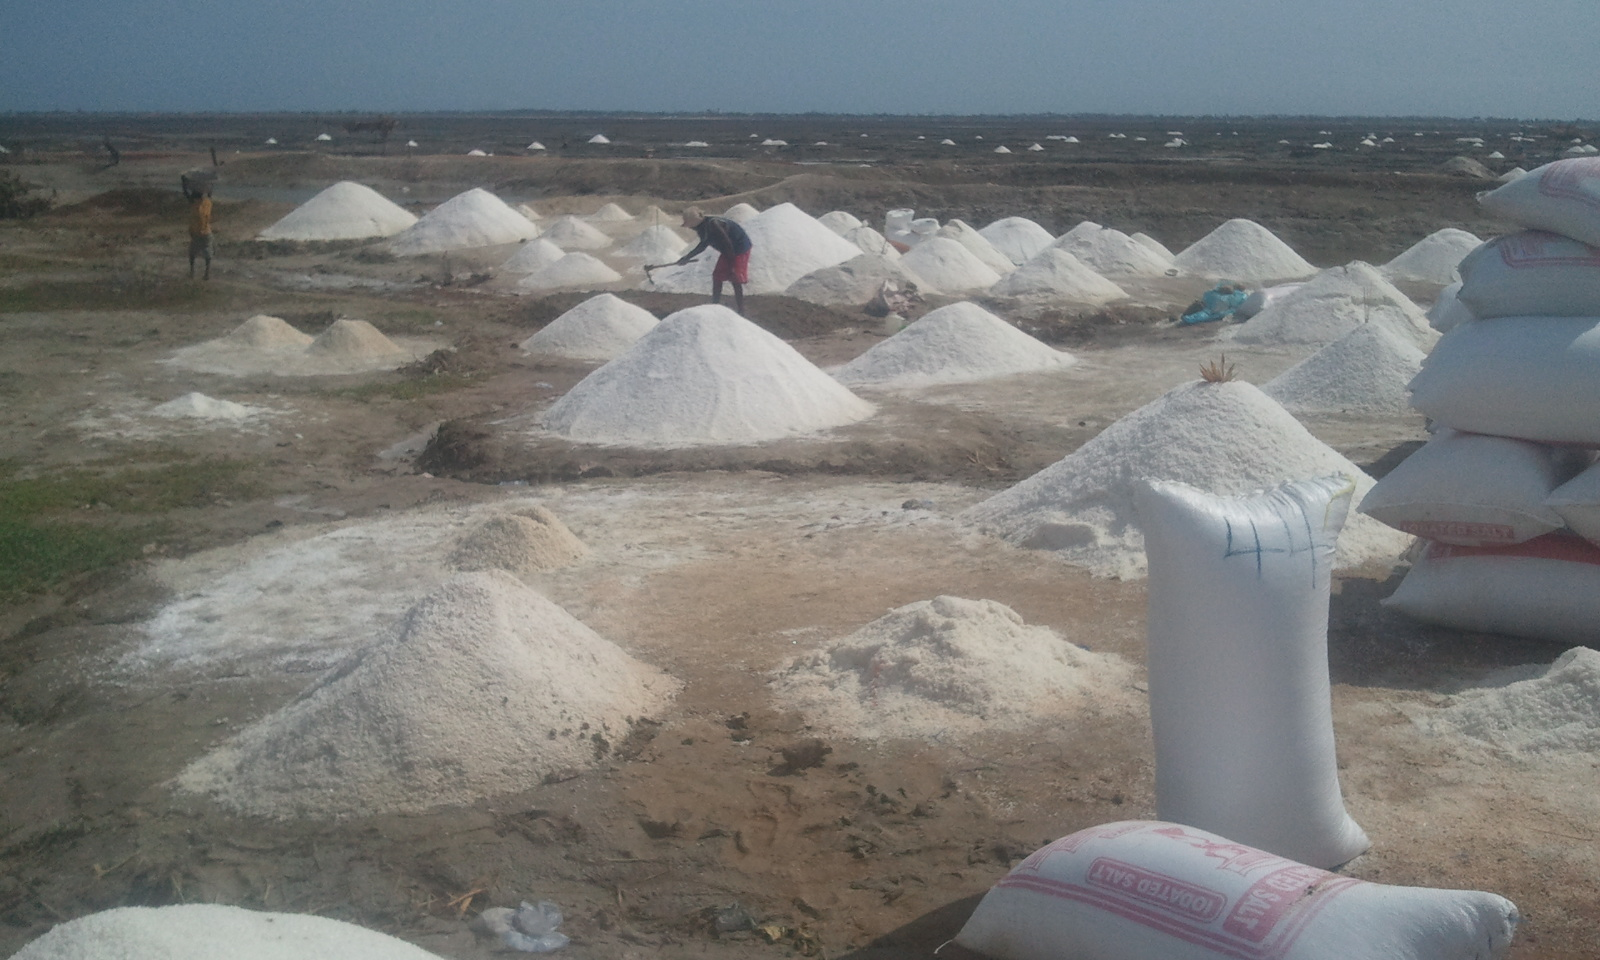 Sitting on salt wealth and living in poverty